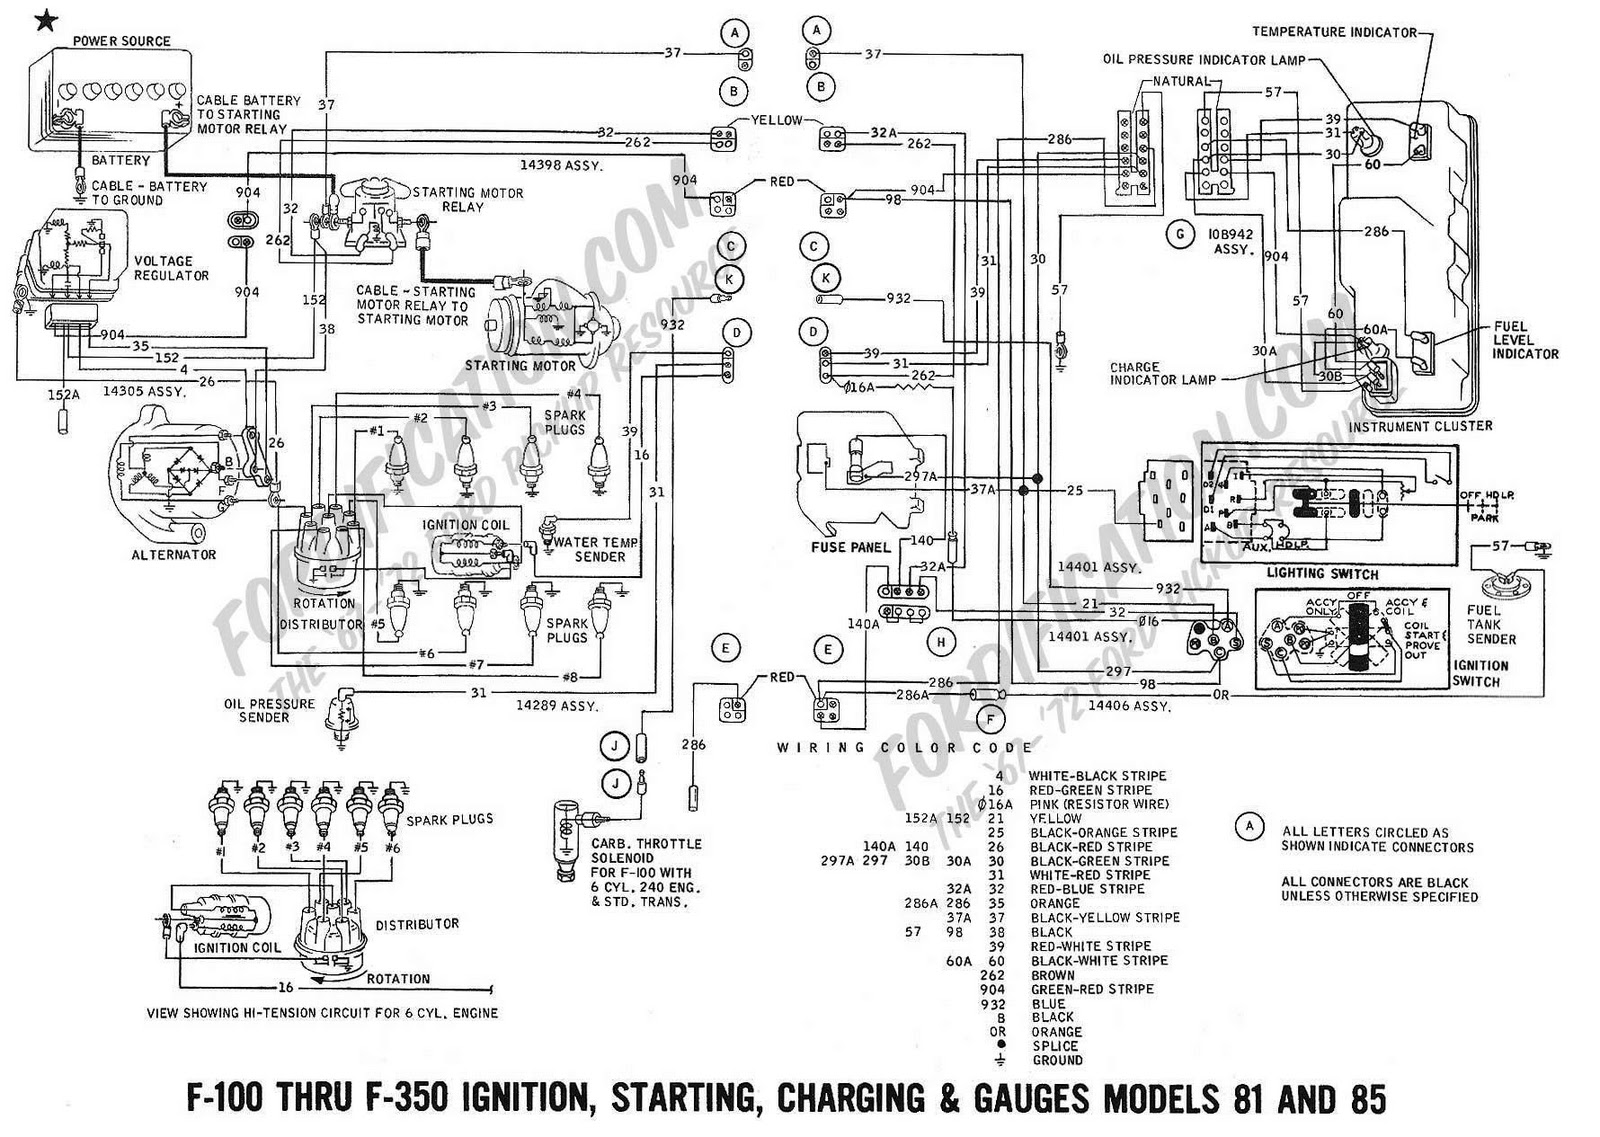 1039331 Explanation Of Engine Electrical further Wiring Diagram For 1987 Toyota Pickup further Toyota Tundra Radio Wiring Diagram further 1993 Chevy G Van Wiring Diagram Manual Original P14391 as well Diy Restoring Clock Ambient Temp Via Obd2 Stock Deck 217538. on toyota wiring color codes